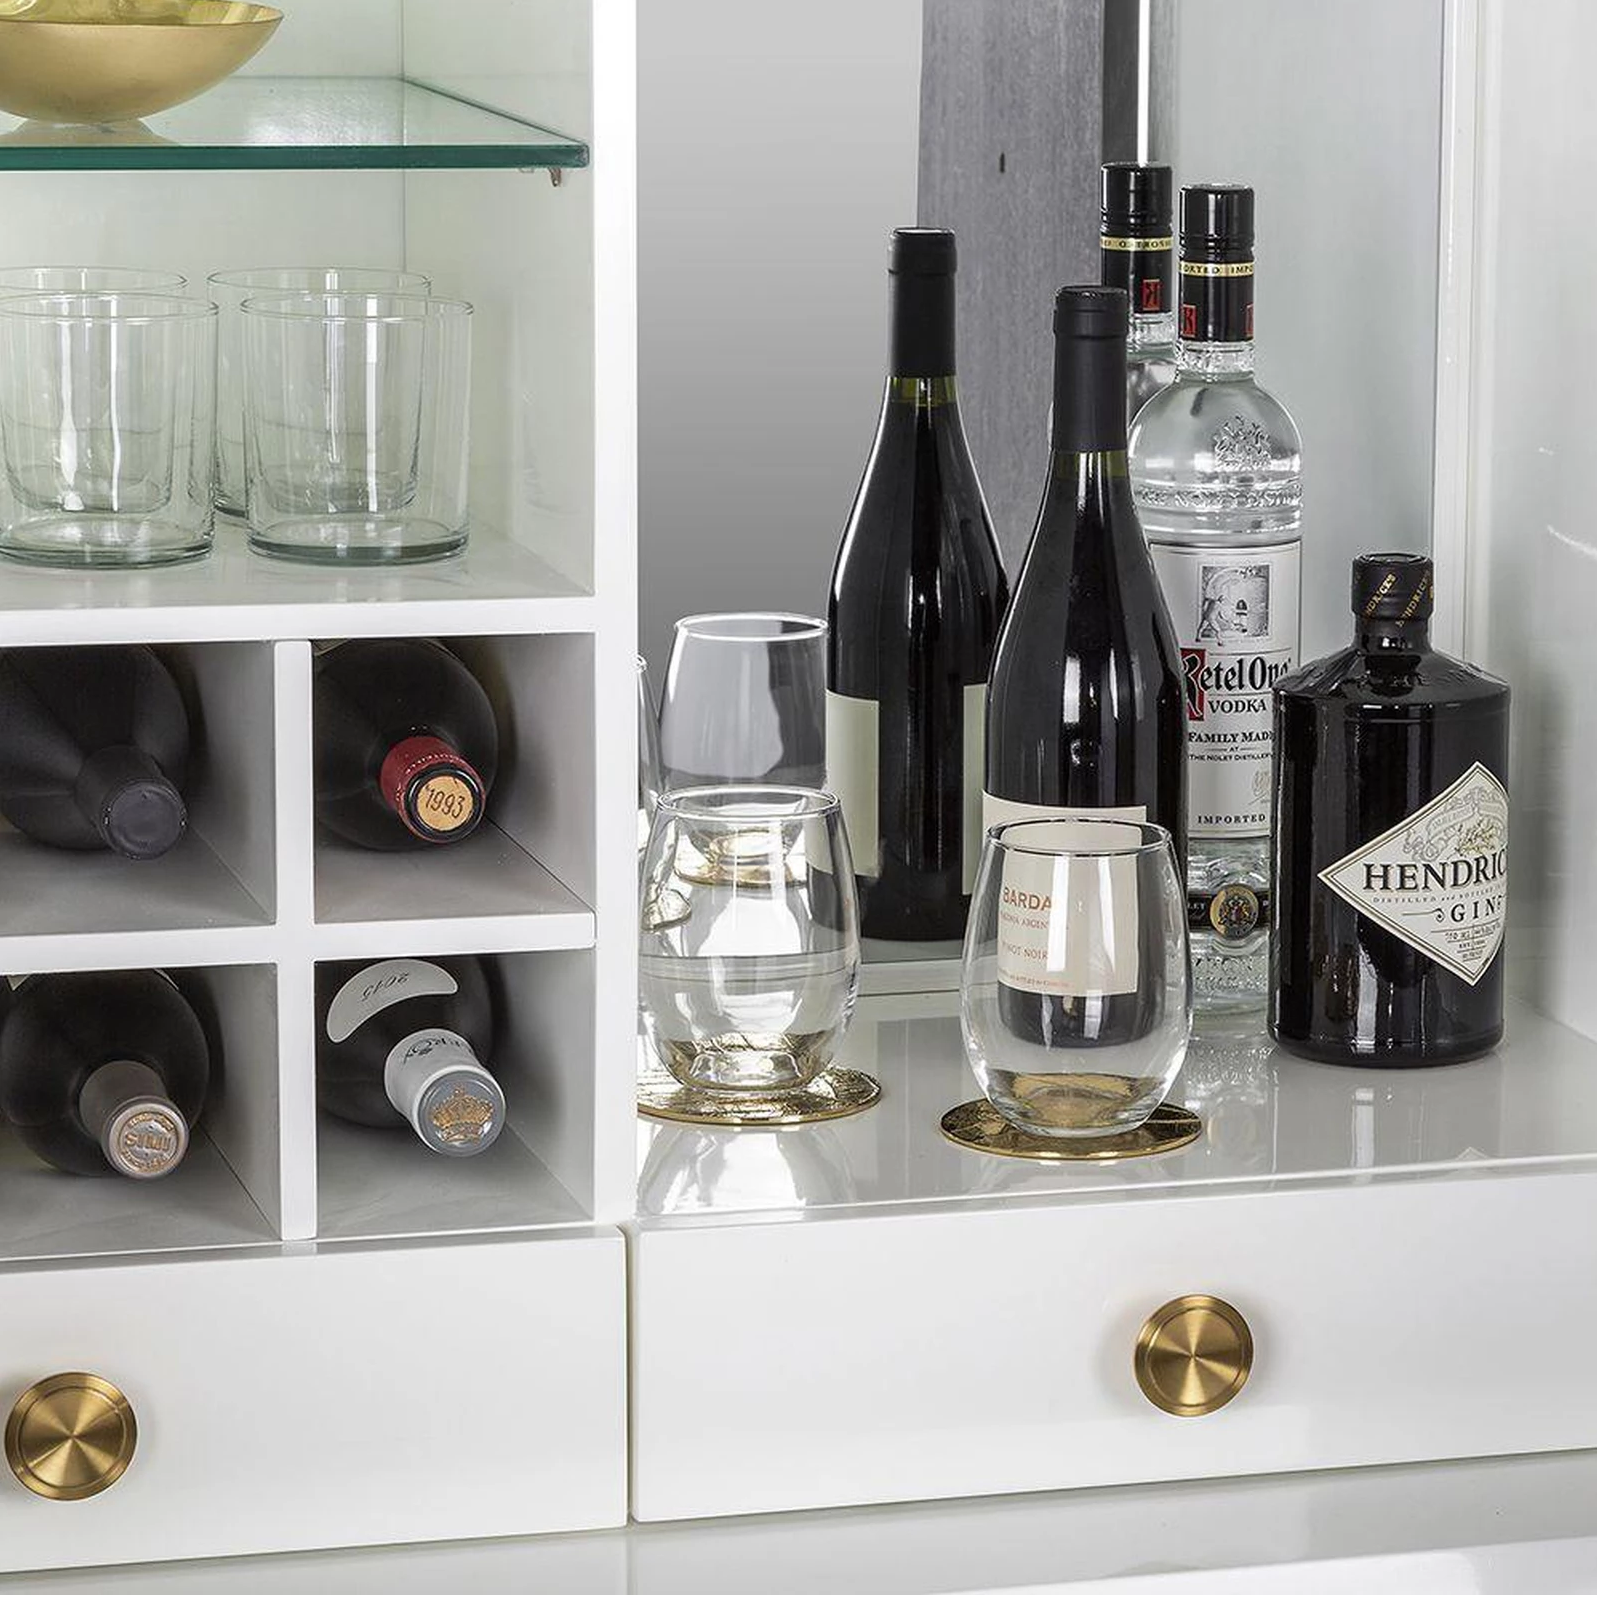 Setting Up A Home Bar? Top Bar Accessories You Should Know About